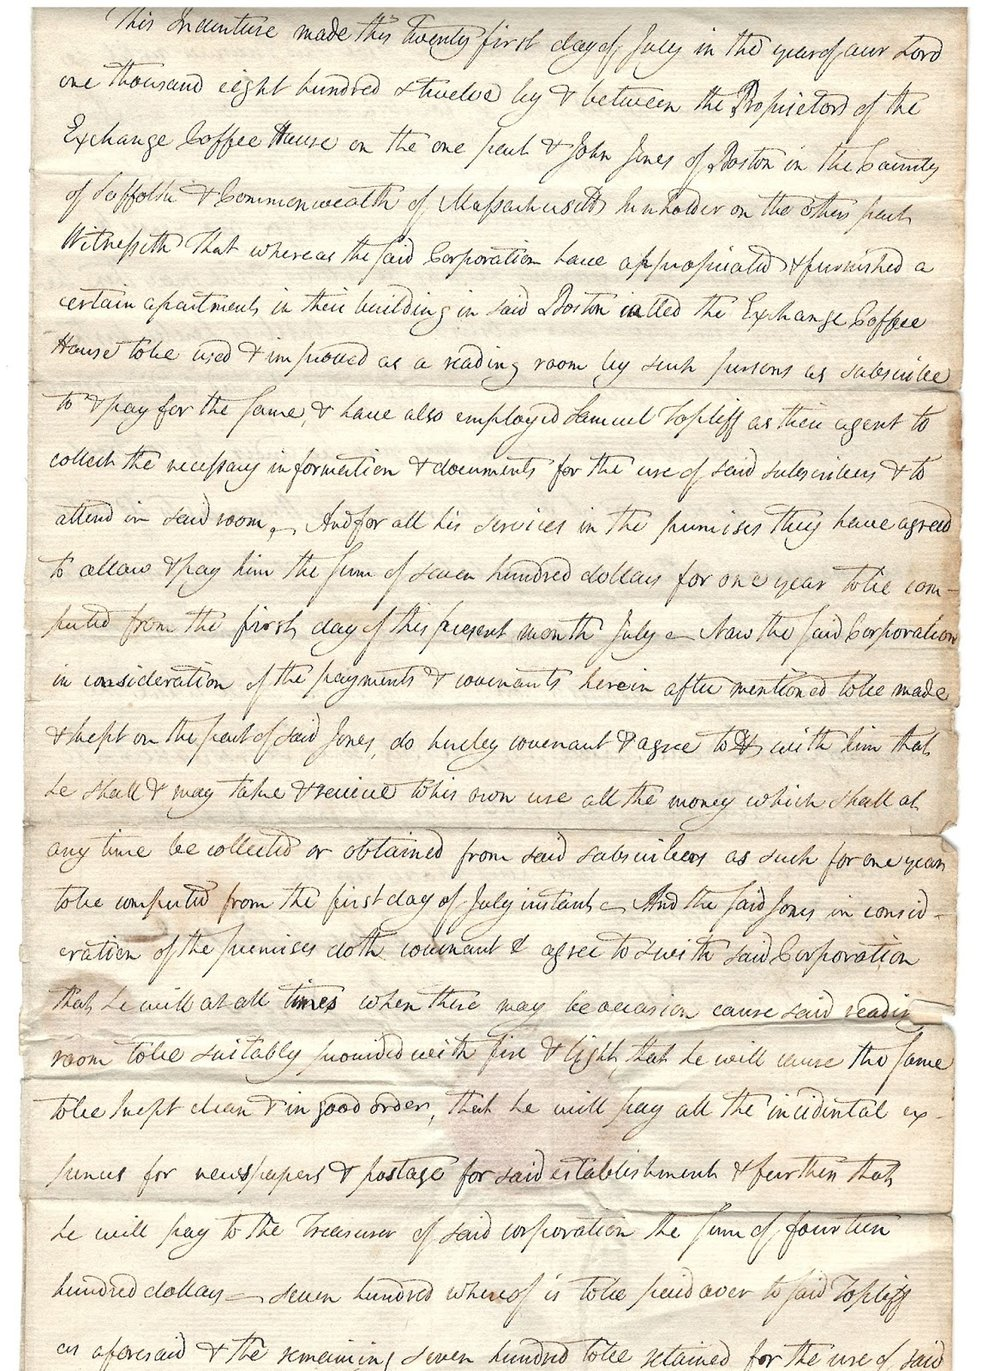 Indenture agreement, July 21, 1812 [page 1](MS0190/03-04)